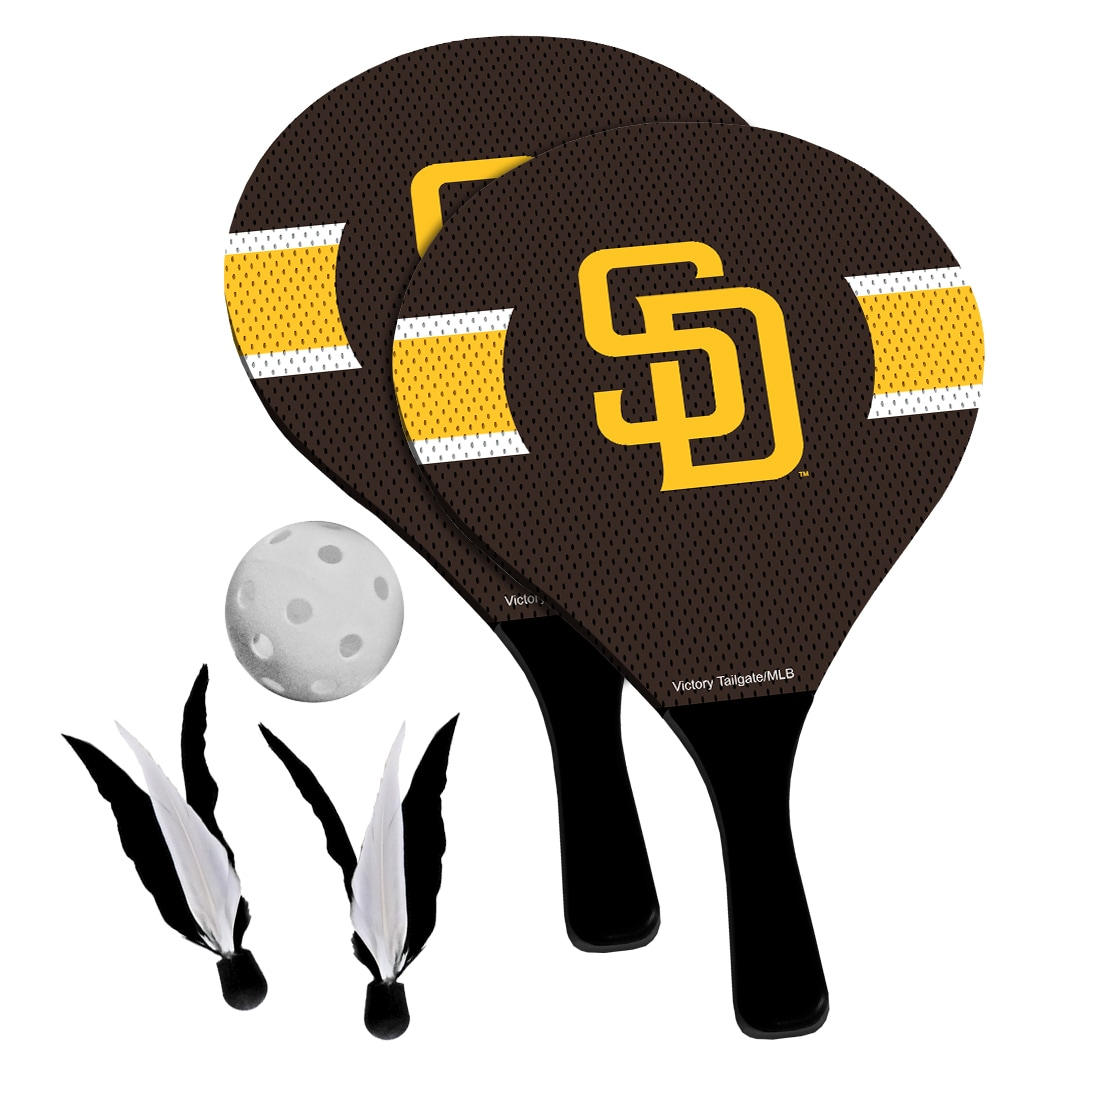 San Diego Padres 2-in-1 Birdie Pickleball Paddle Game